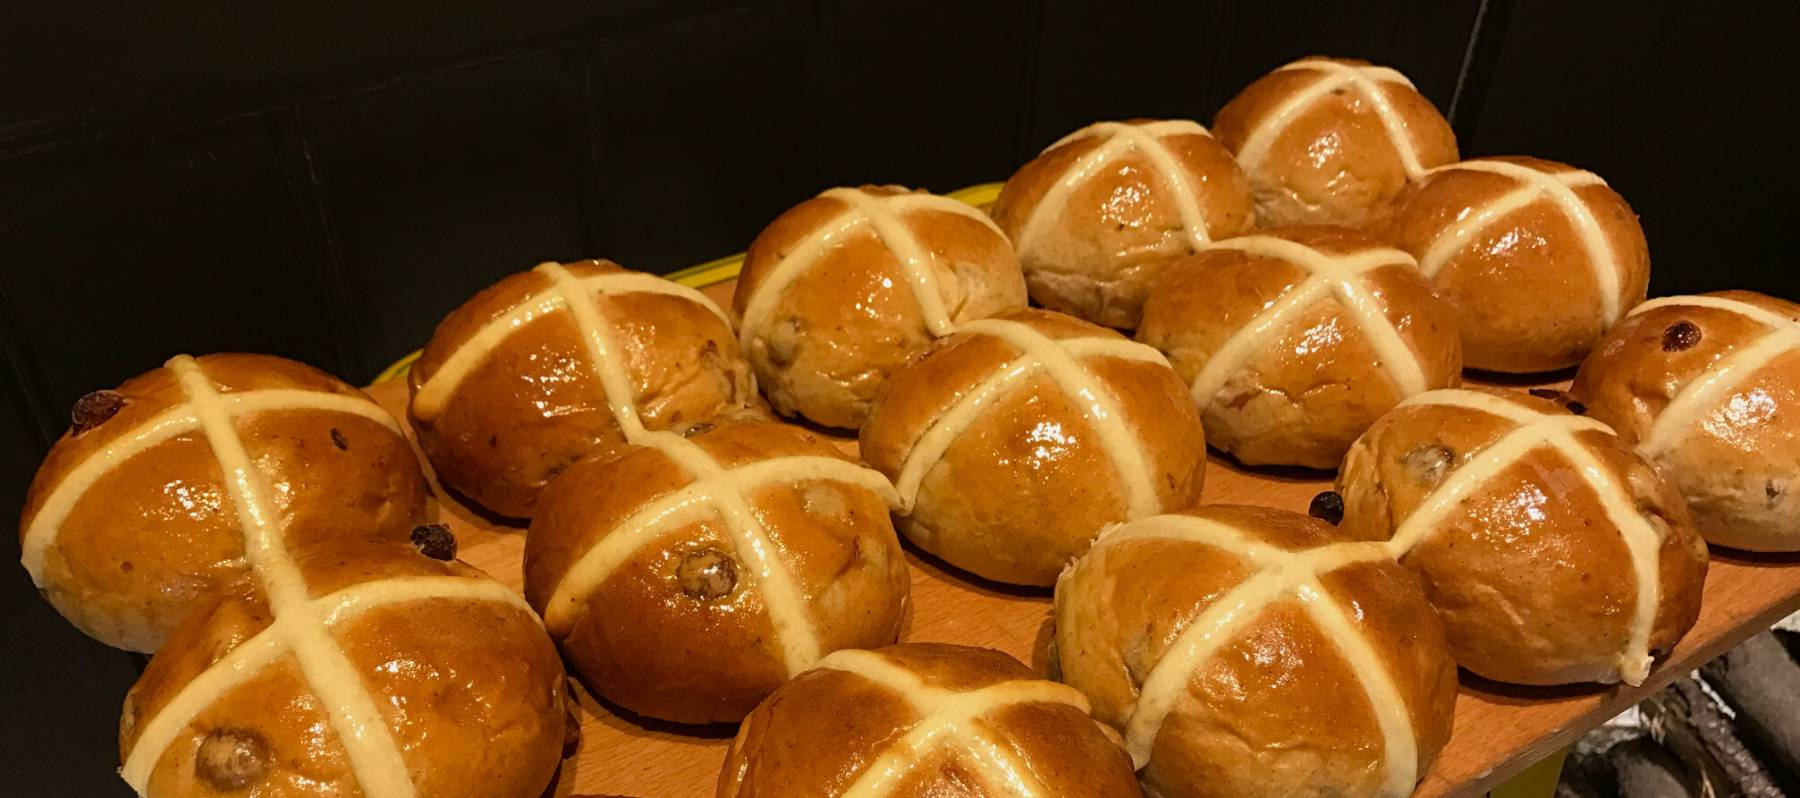 Panecillos de pascua o 'hot cross buns'